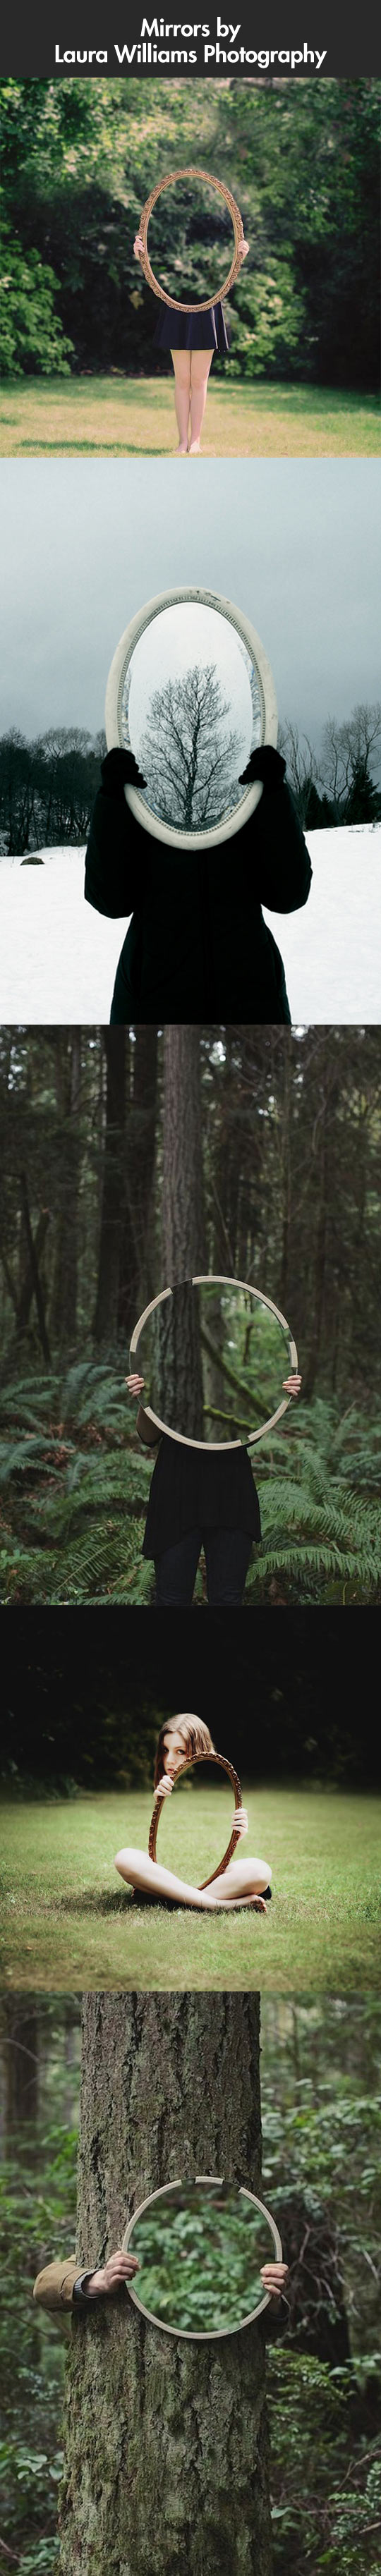 cool-mirrors-photography-Laura-Williams